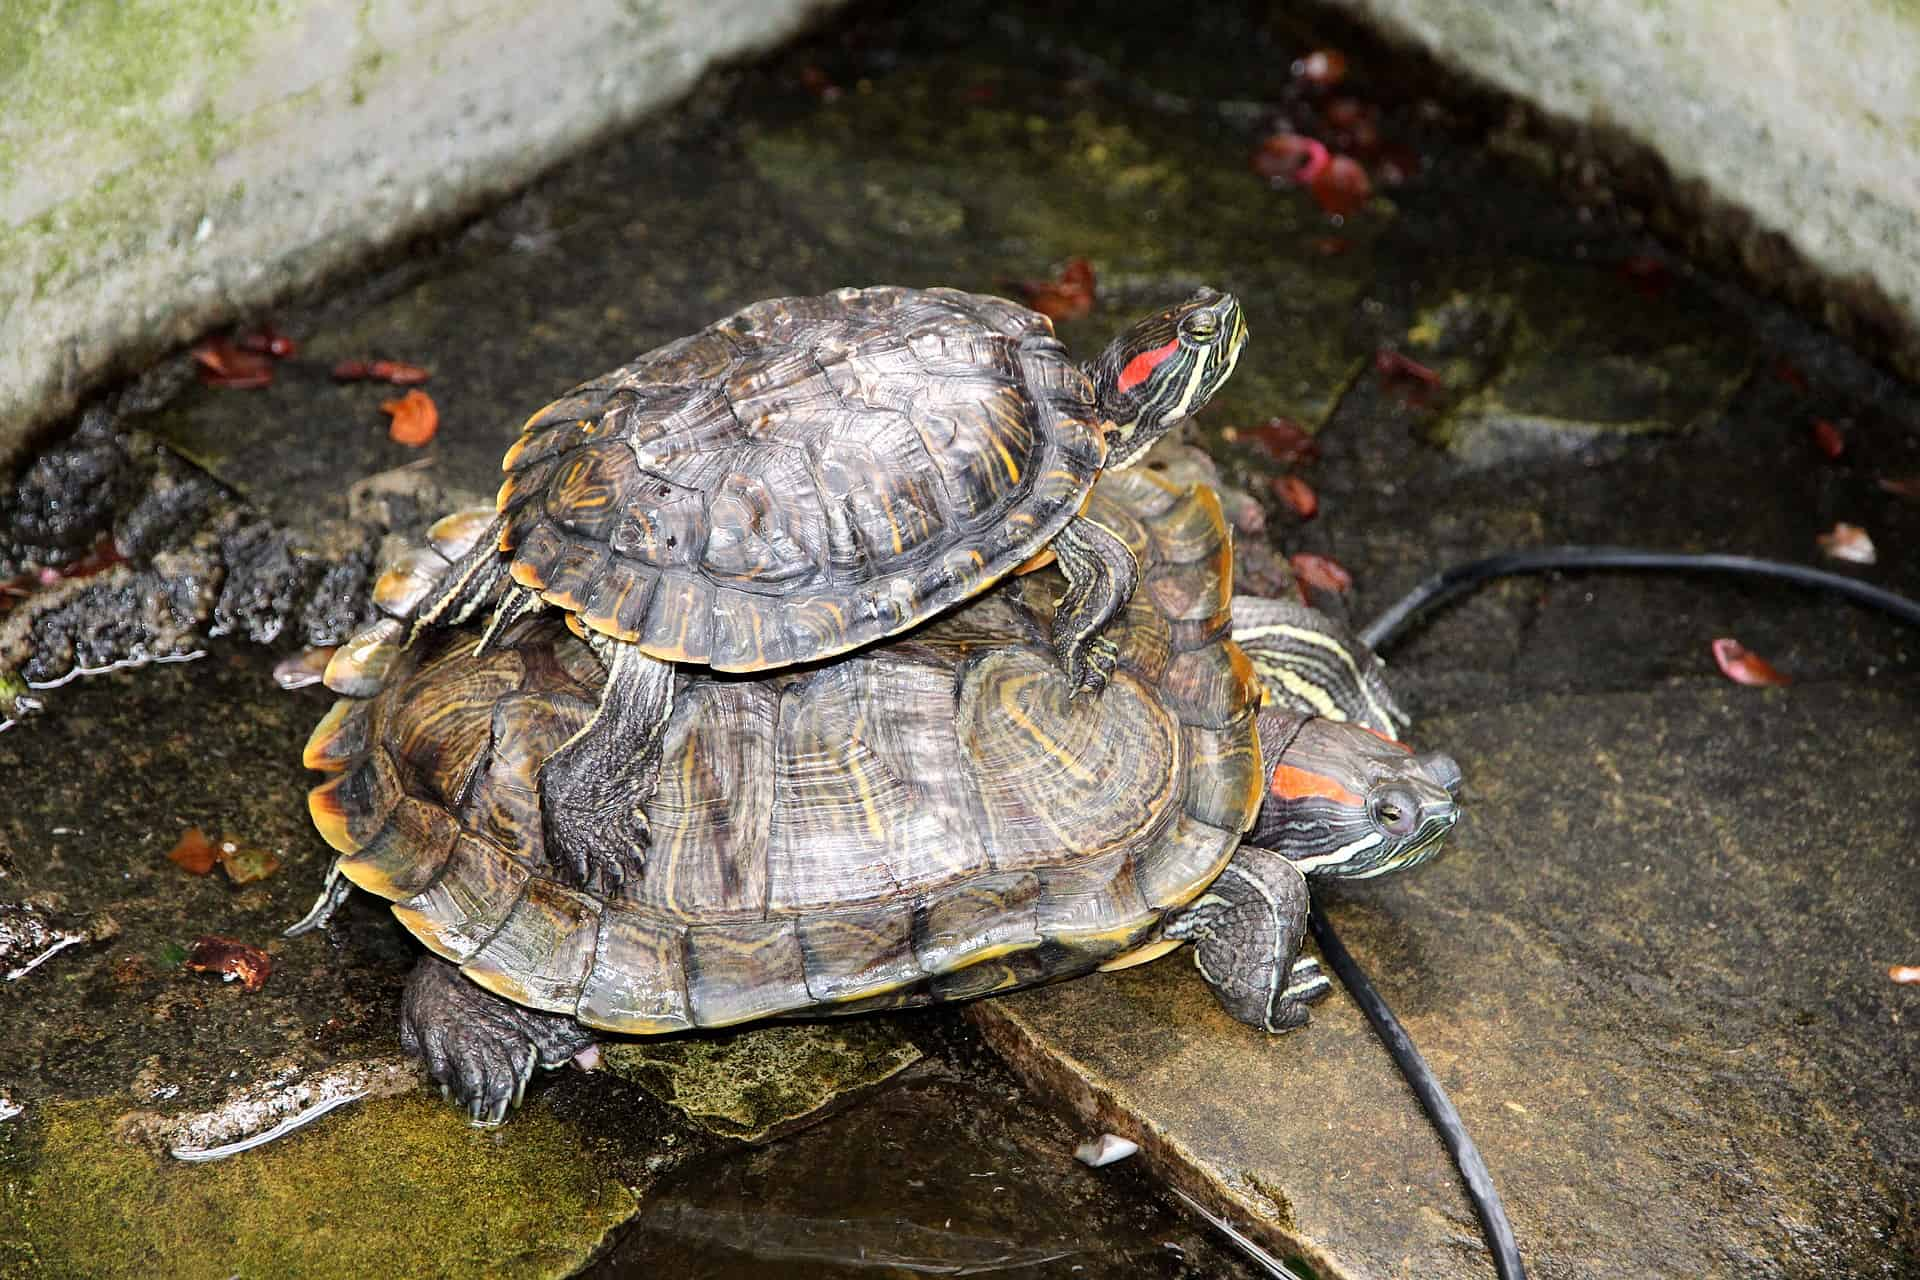 Small terrapin sitting on larger terrapin in pond